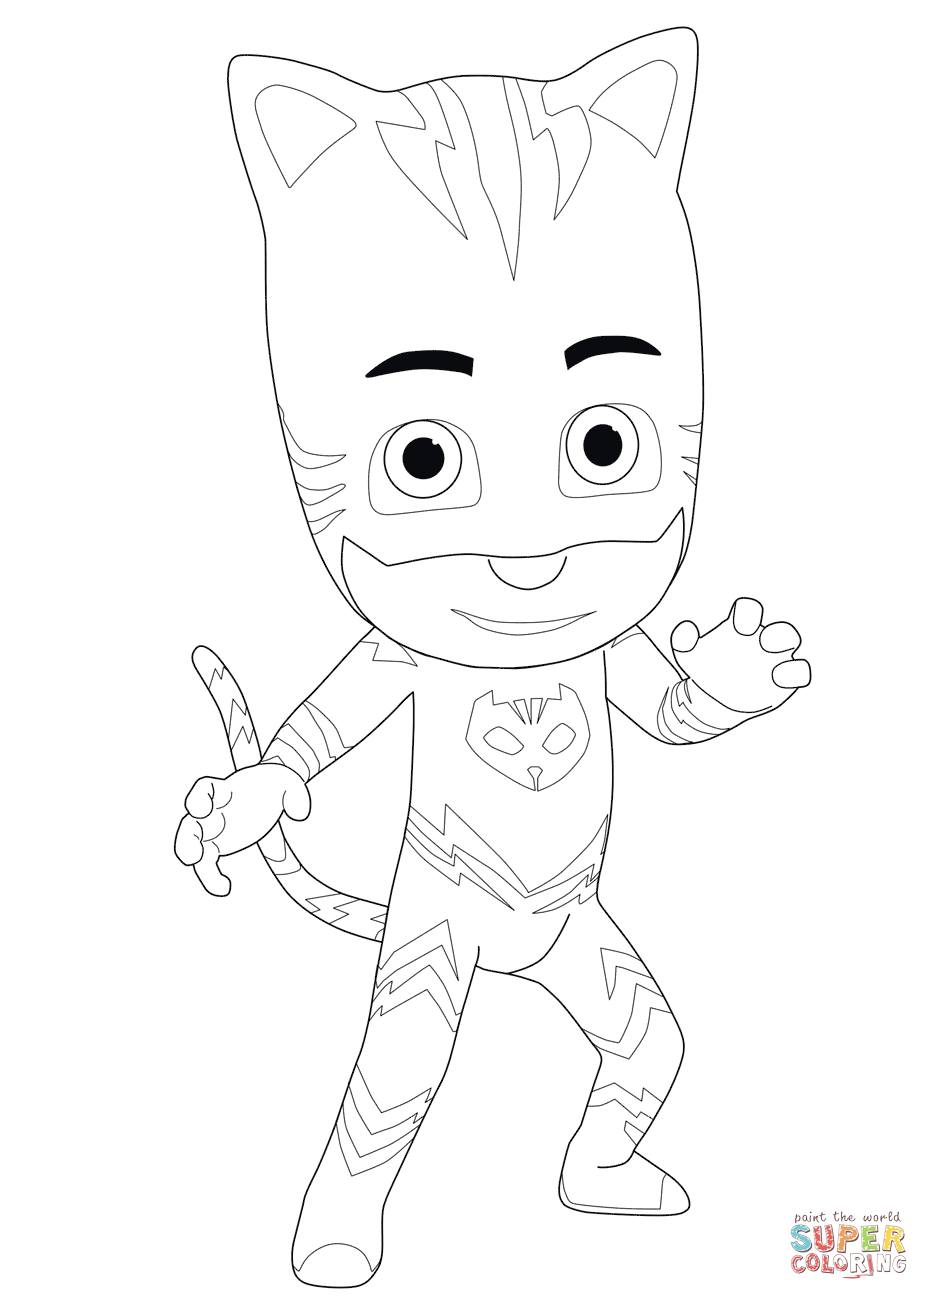 Pj Masks Coloring Pages Black And White : masks, coloring, pages, black, white, Catboy, Masks, Coloring, Printable, Pages